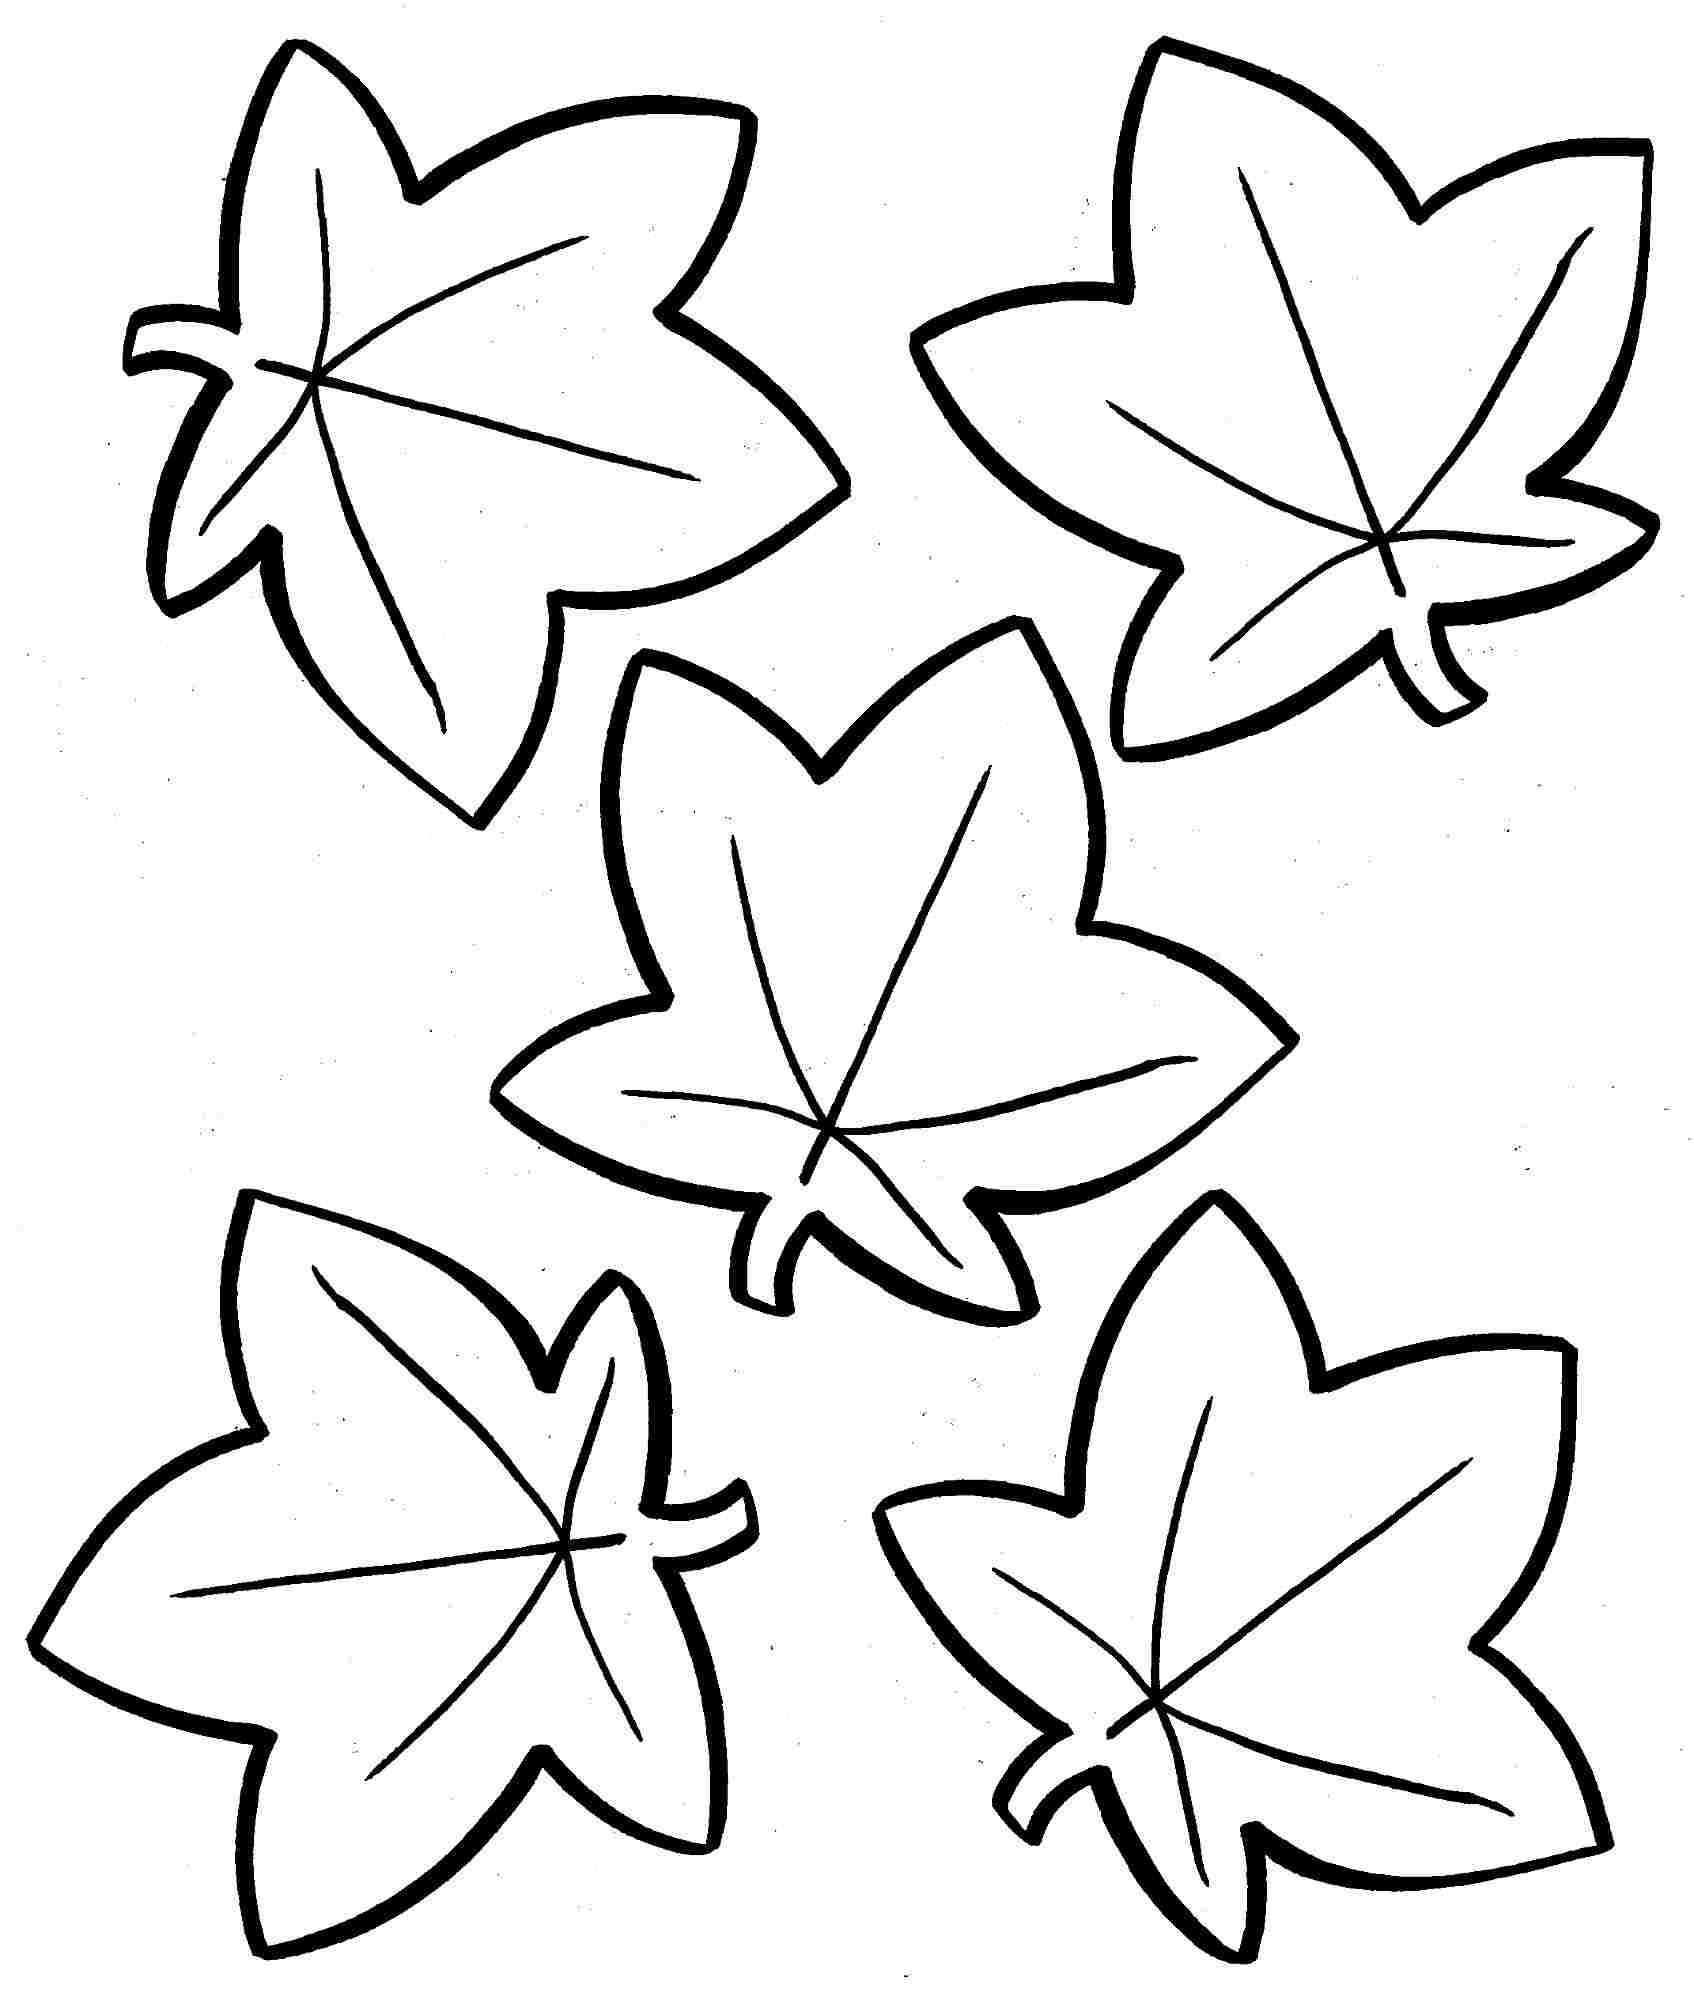 Printable Fall Coloring Pages Ideas To Kill Your Time is part of Fall leaves coloring pages, Leaf coloring page, Fall coloring pages, Fall coloring sheets, Fall leaves drawing, Fall coloring pictures - Do you miss fall because it is starting to winter and always snowy  Calm down and do not worry because the fall coloring pages ideas will heal it  Winter makes you difficult to go out or hold an activity outside  It is because the weather is always cold until far below zero  Along with the snow, the people will freeze if they are in outside for a long time